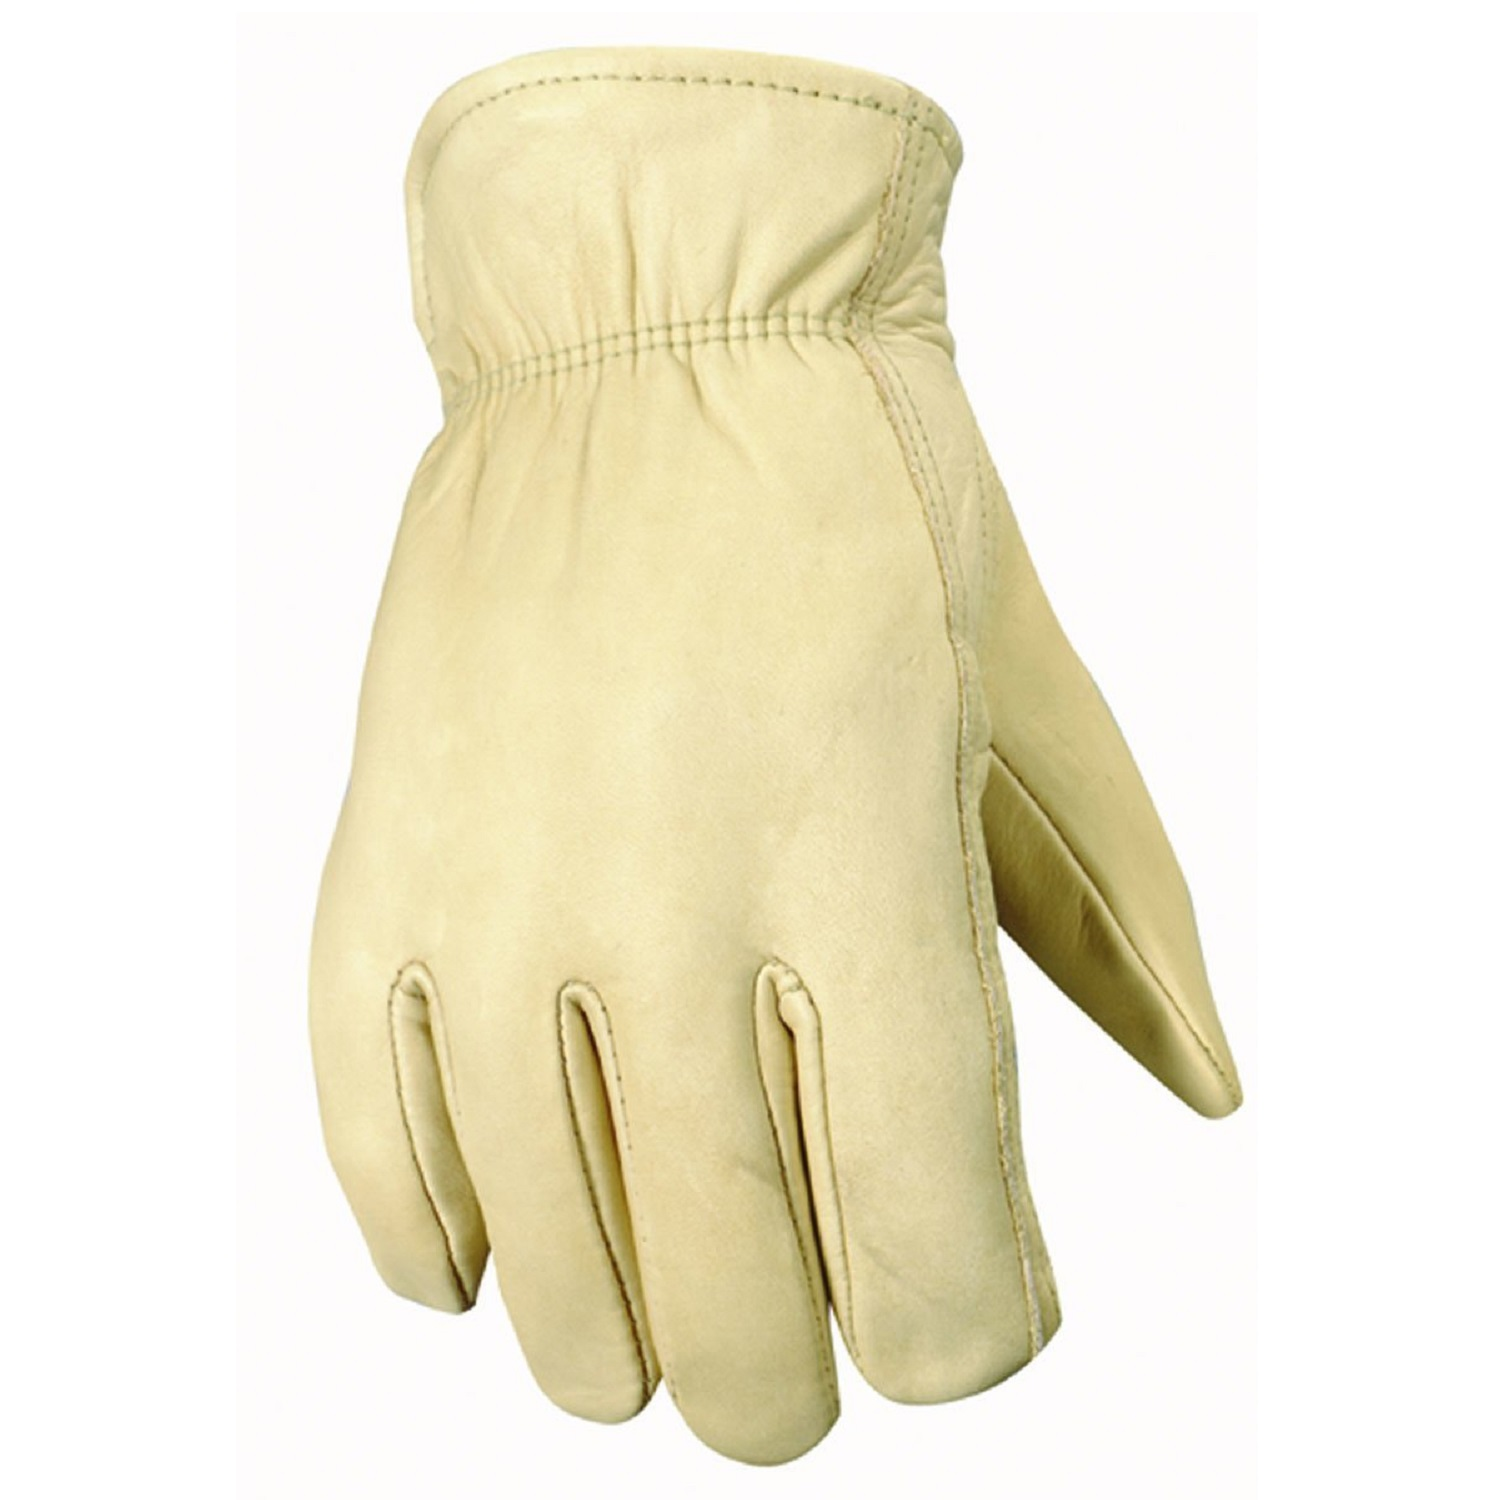 Wells Lamont Thinsulate Lined Leather Cowhide Work Glove XXL